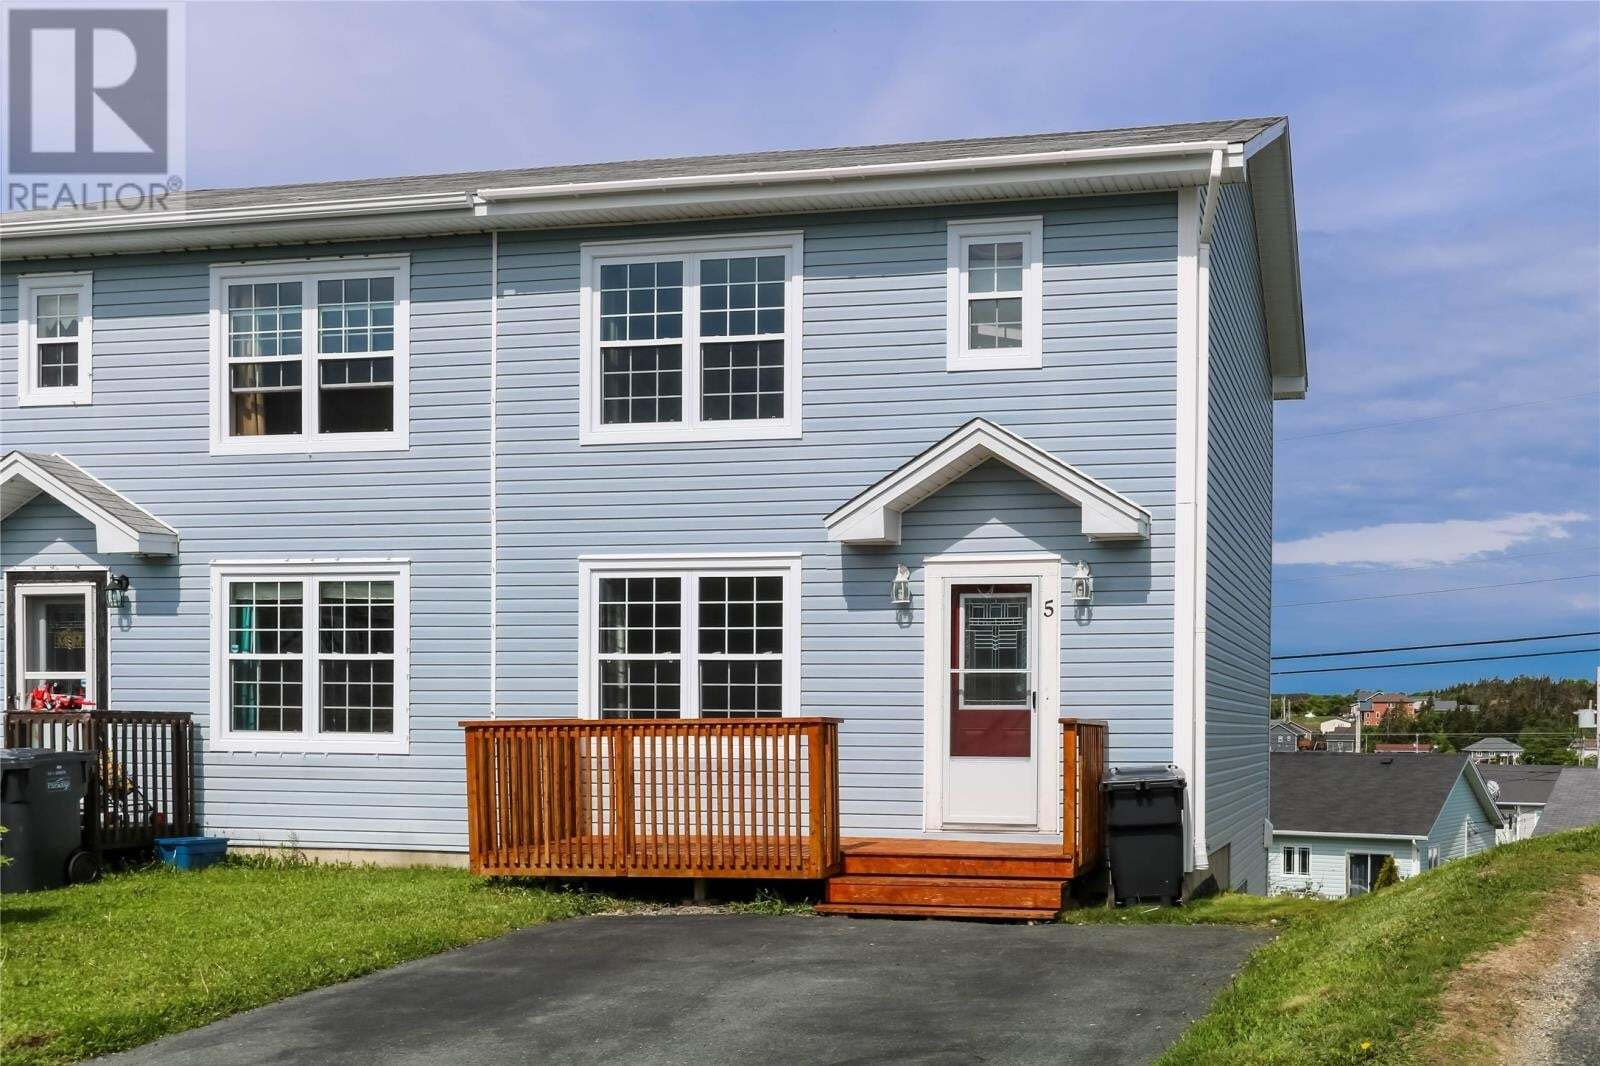 House for sale at 5 Dellemere Pl Paradise Newfoundland - MLS: 1216374